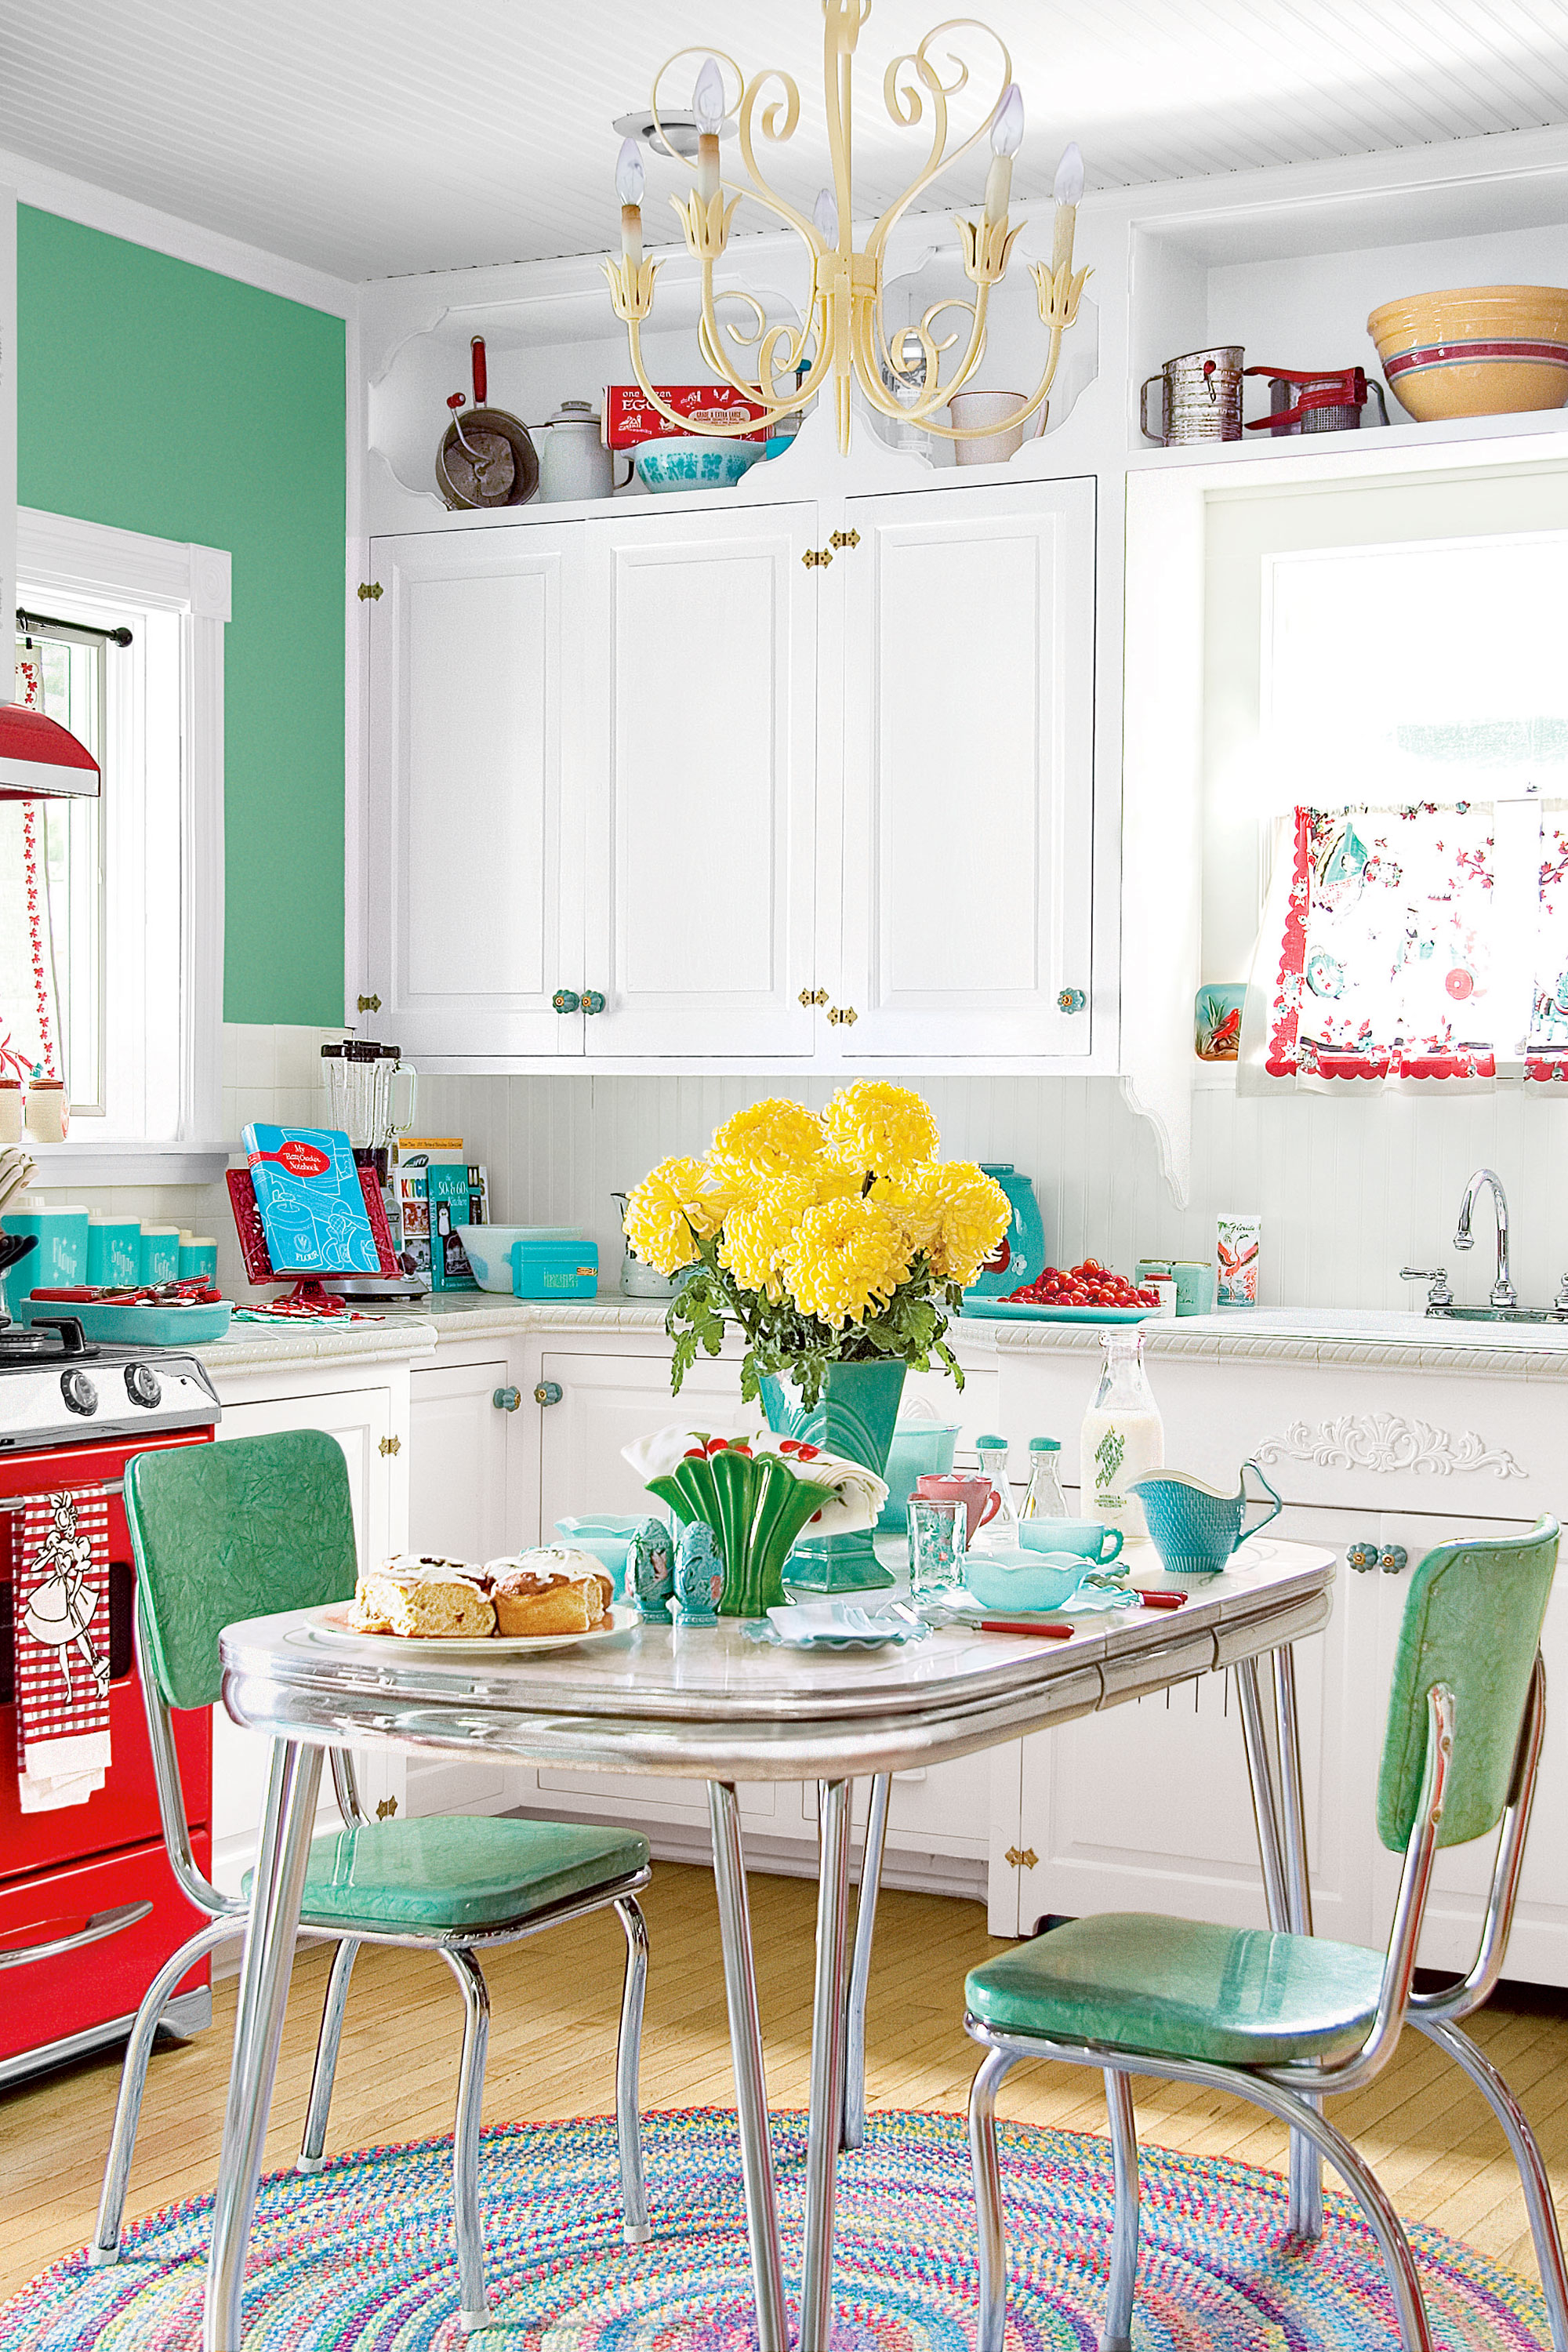 11 Retro Diner Decor Ideas for Your Kitchen - Vintage Kitchen Decor